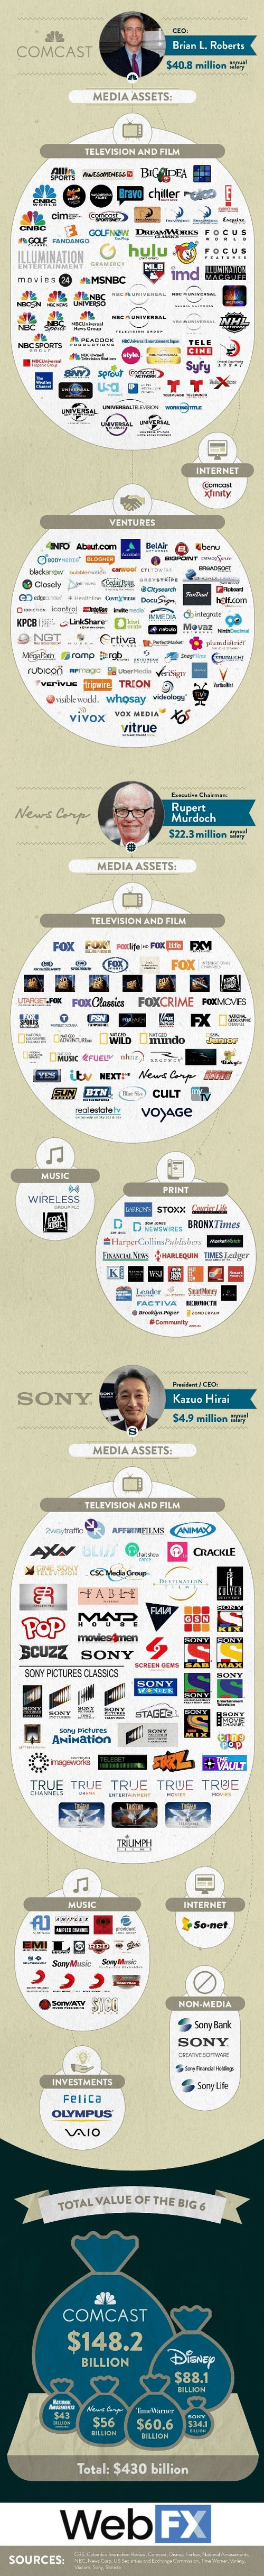 the-6-companies-that-own-almost-all-media2.jpg